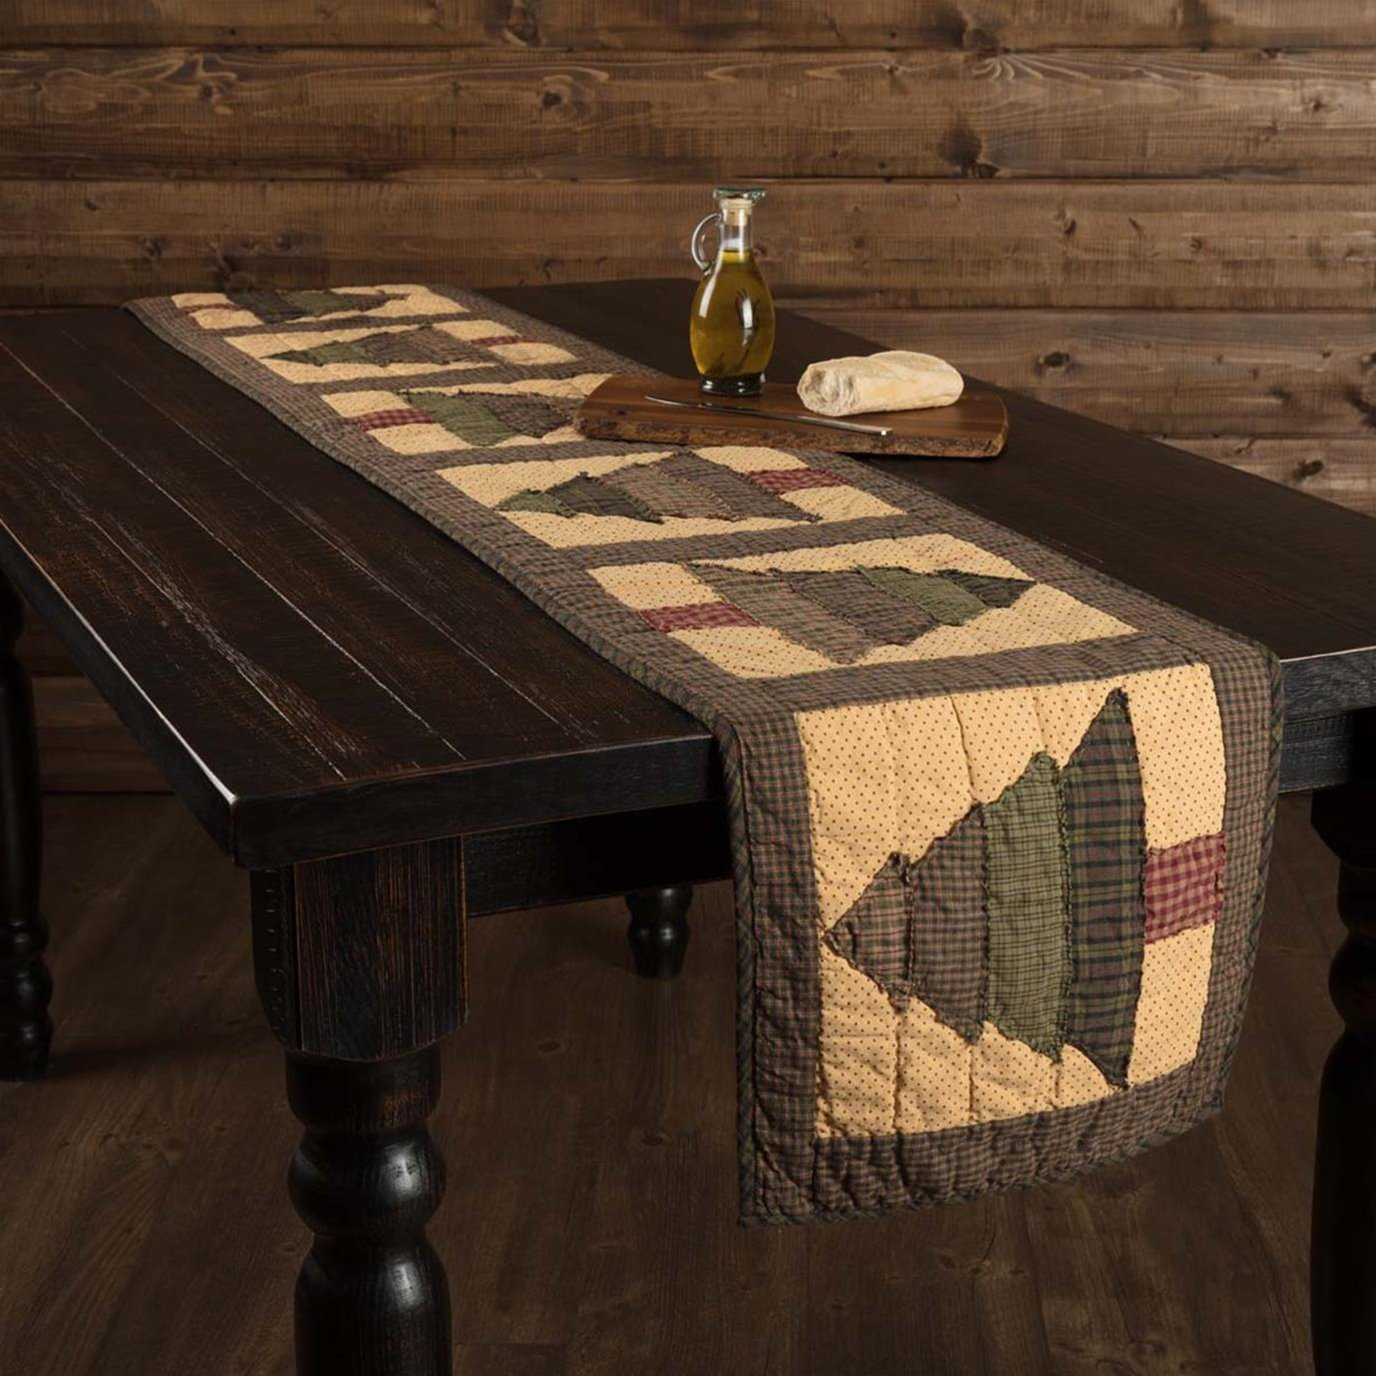 Sequoia Quilted Runner 13x90